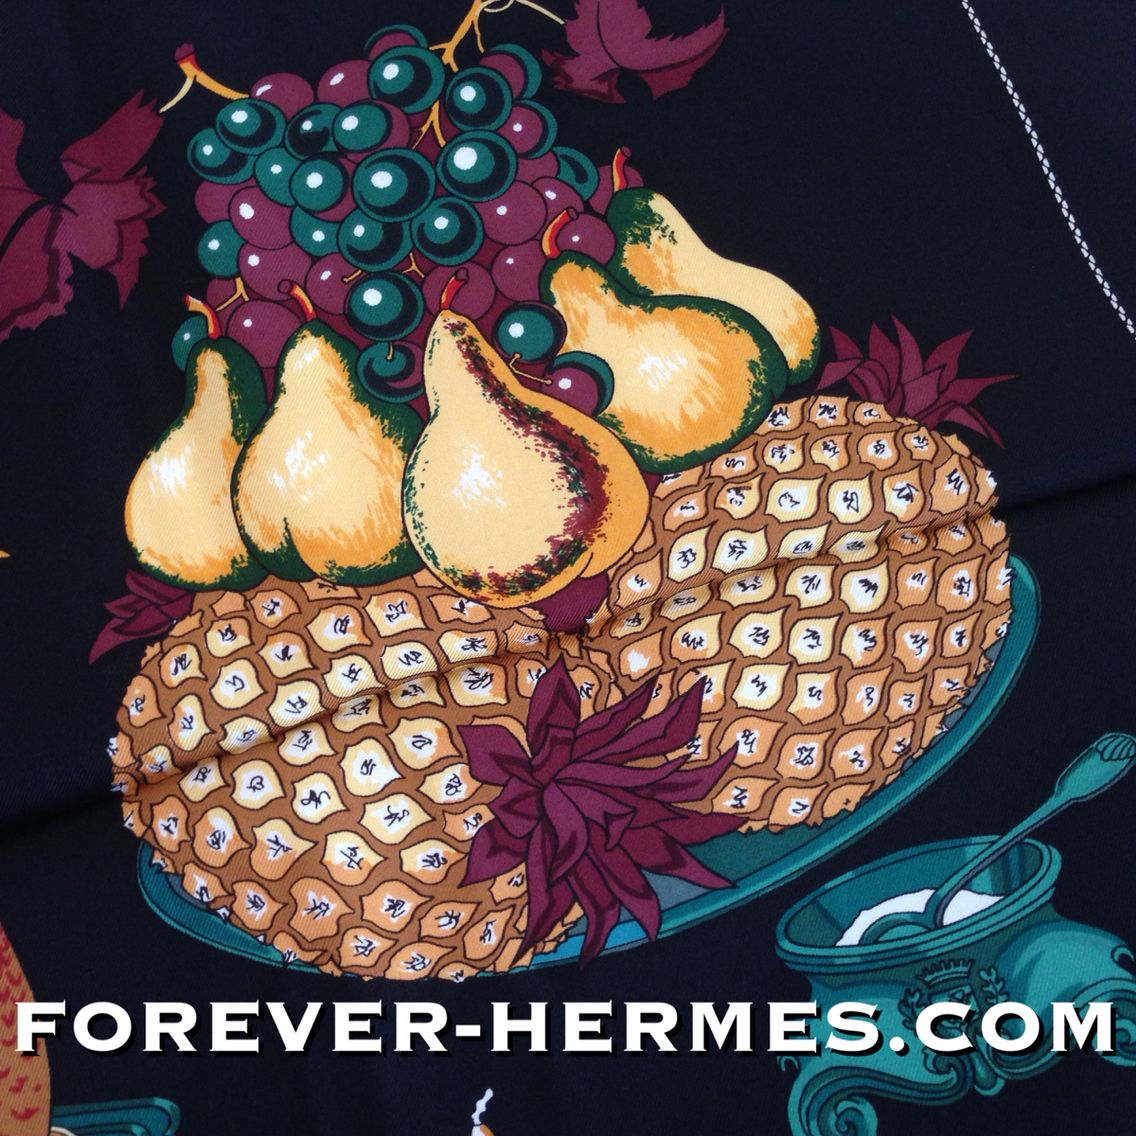 Hermes Paris silk scarf titled Gastronomie designed by French Artist Christiane Vauzelles very rare, this Black is already sold out but the White is in our store now! http://forever-hermes.com #ForeverHermes features Still Life of #Homard #Lobster #pheasant bird, #SeaFood #urchin #oyster French #cheese wine as well as fruits and #cakes would look stunning on your #restaurant wall #kitchen #WallDecor for a luxurious home! #hermescollector #MensSuit #mensnecktie #mensfashion #womensfashion…